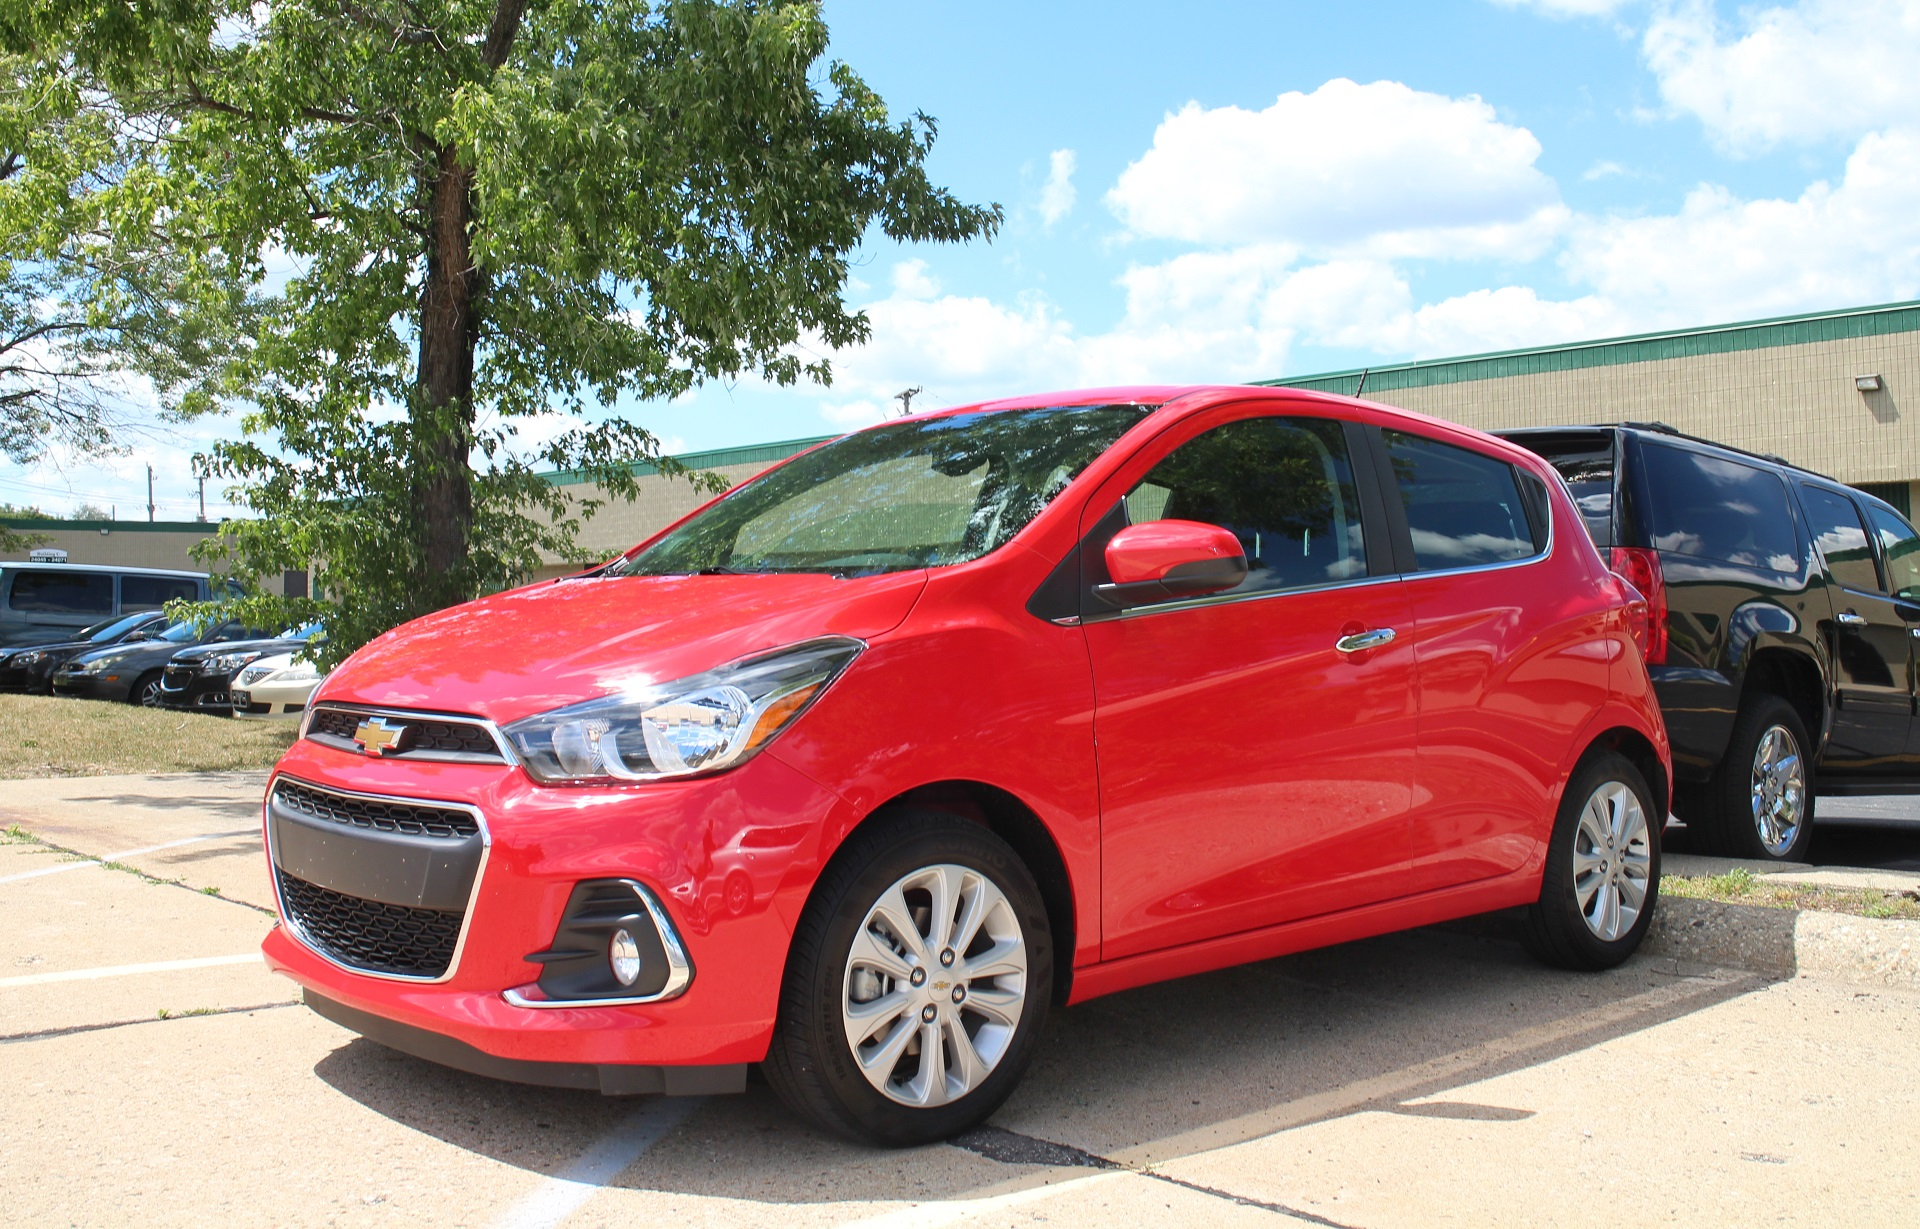 New Chevy Cars >> 2016 Chevrolet Spark (Chevy) Review, Ratings, Specs, Prices, and Photos - The Car Connection